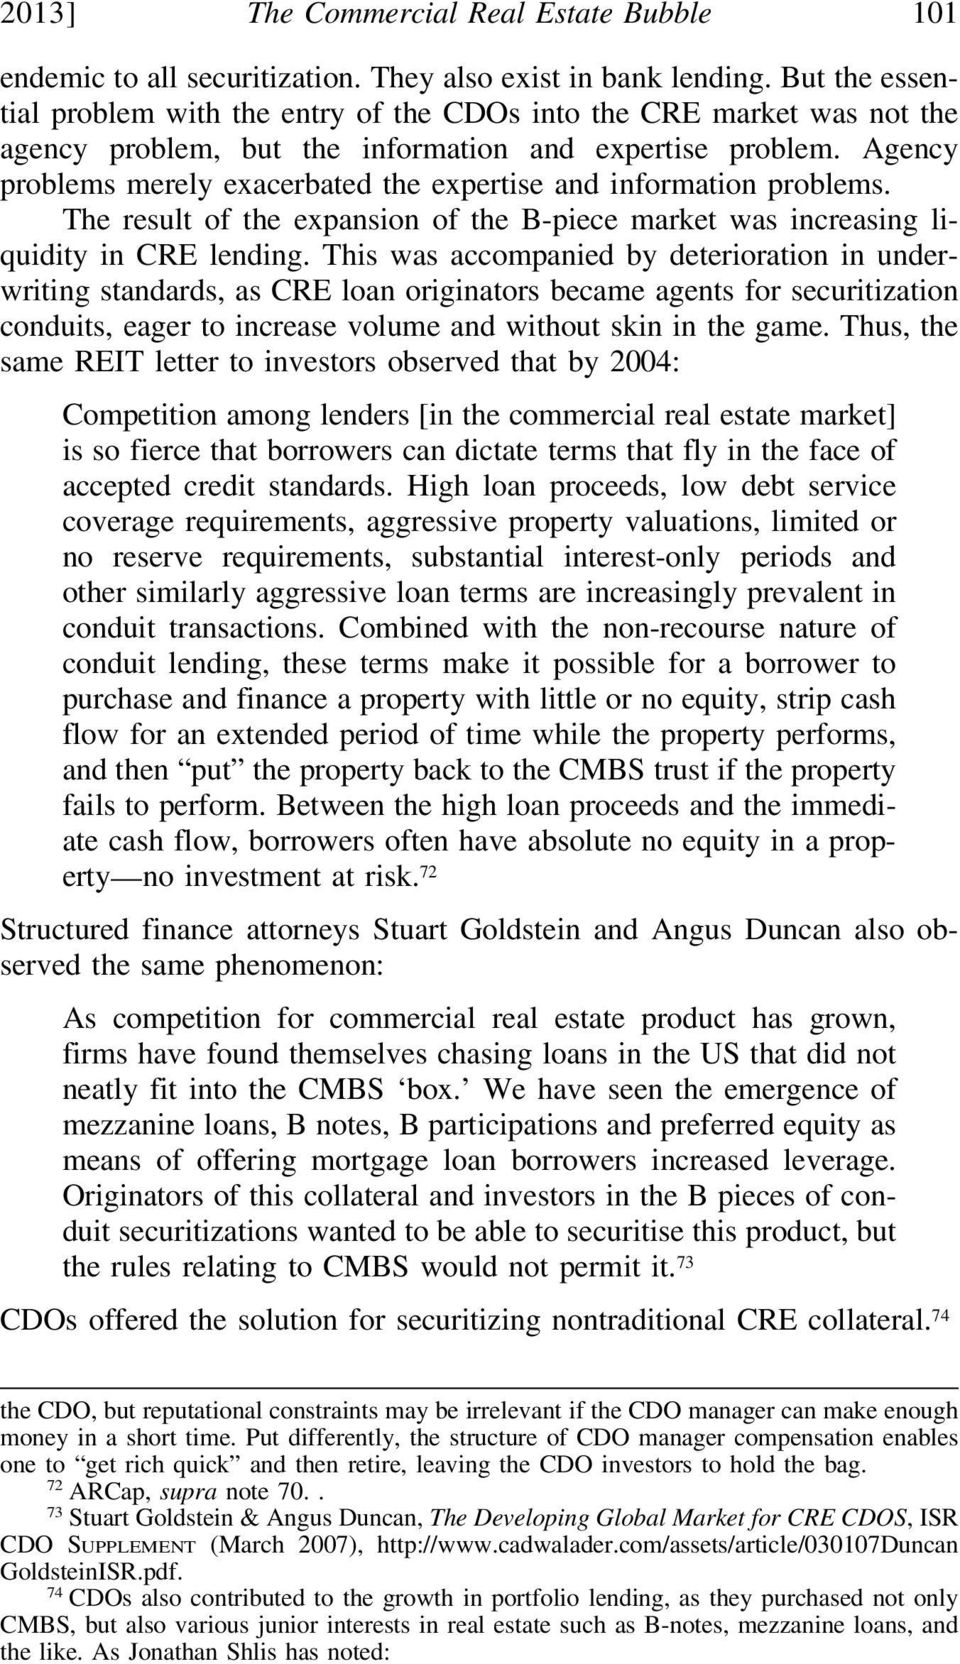 Agency problems merely exacerbated the expertise and information problems. The result of the expansion of the B-piece market was increasing liquidity in CRE lending.